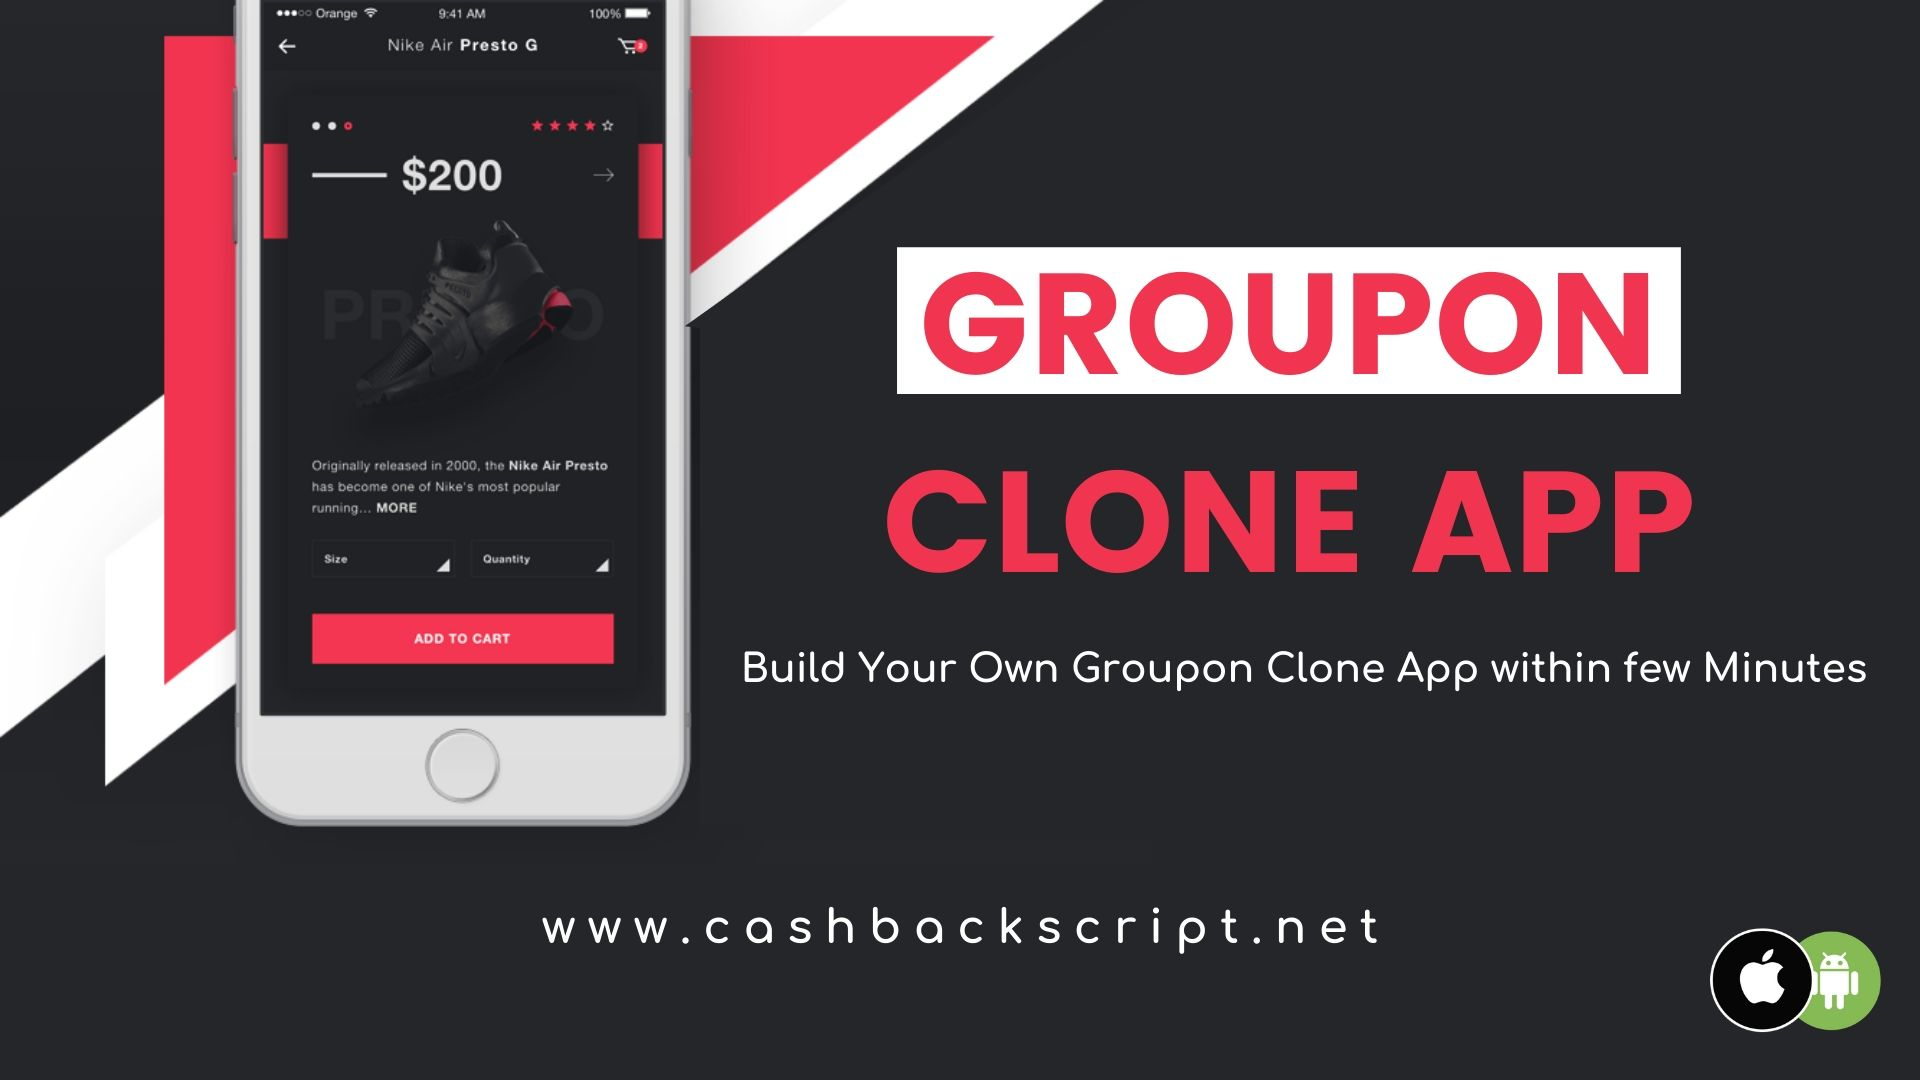 Groupon Clone APP : Money Making Business Idea